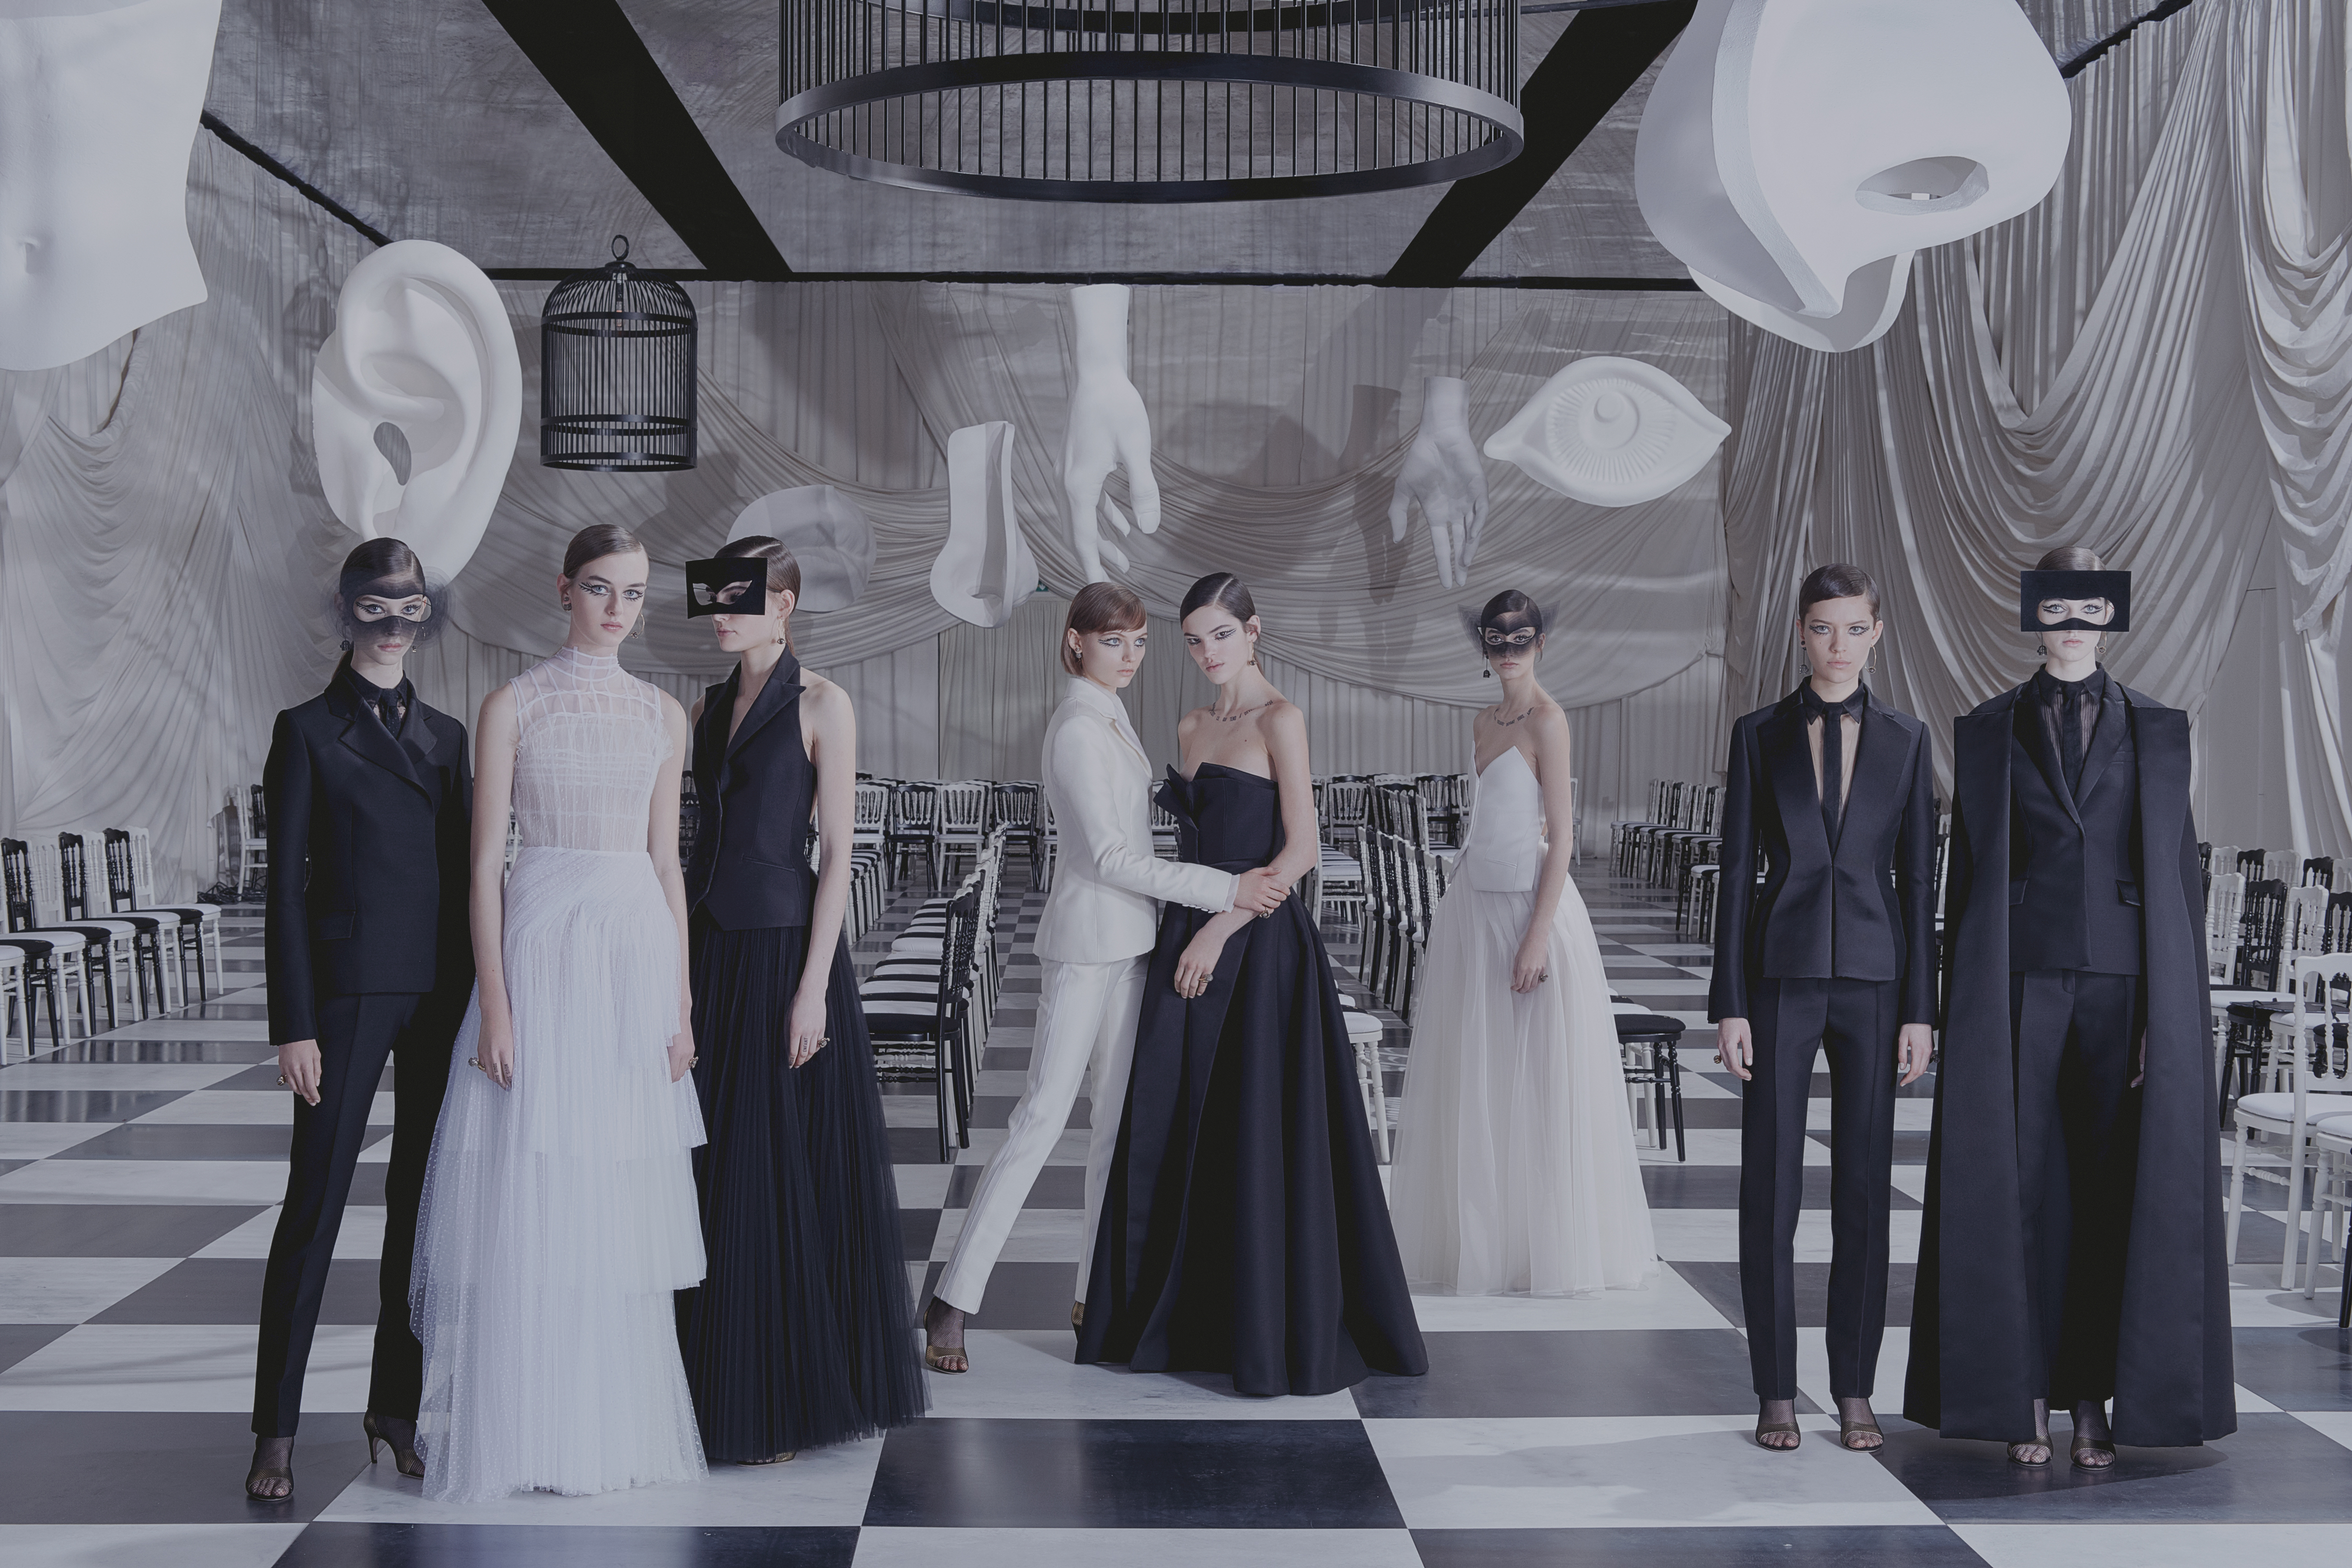 25 looks from the Christian Dior Haute Couture Spring-Summer 2018 Collection